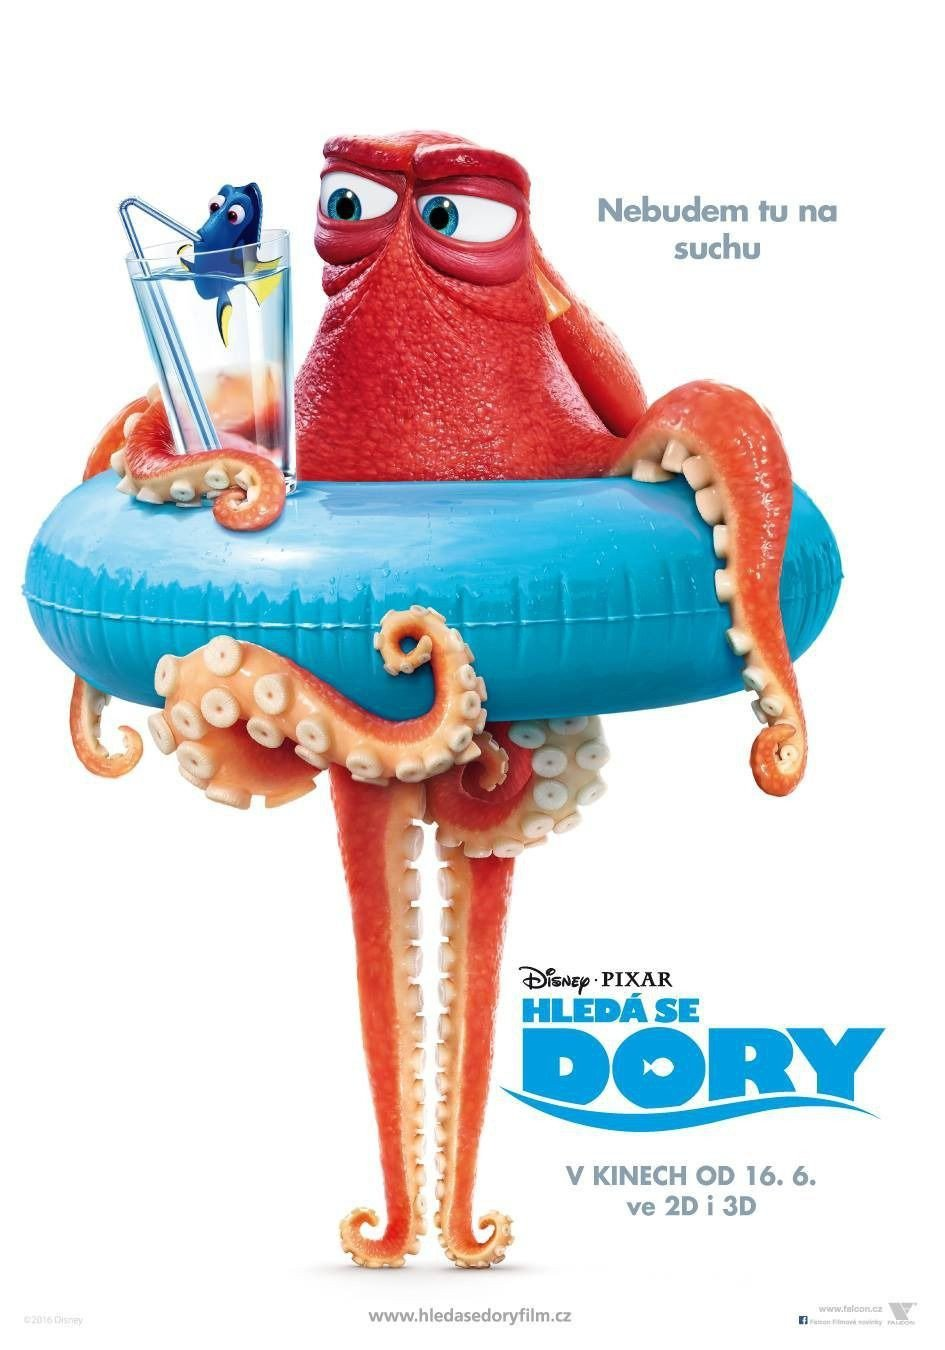 Finding Dory Bedroom Decor New Finding Dory Bedroom Decor Fresh New Movie Posters for